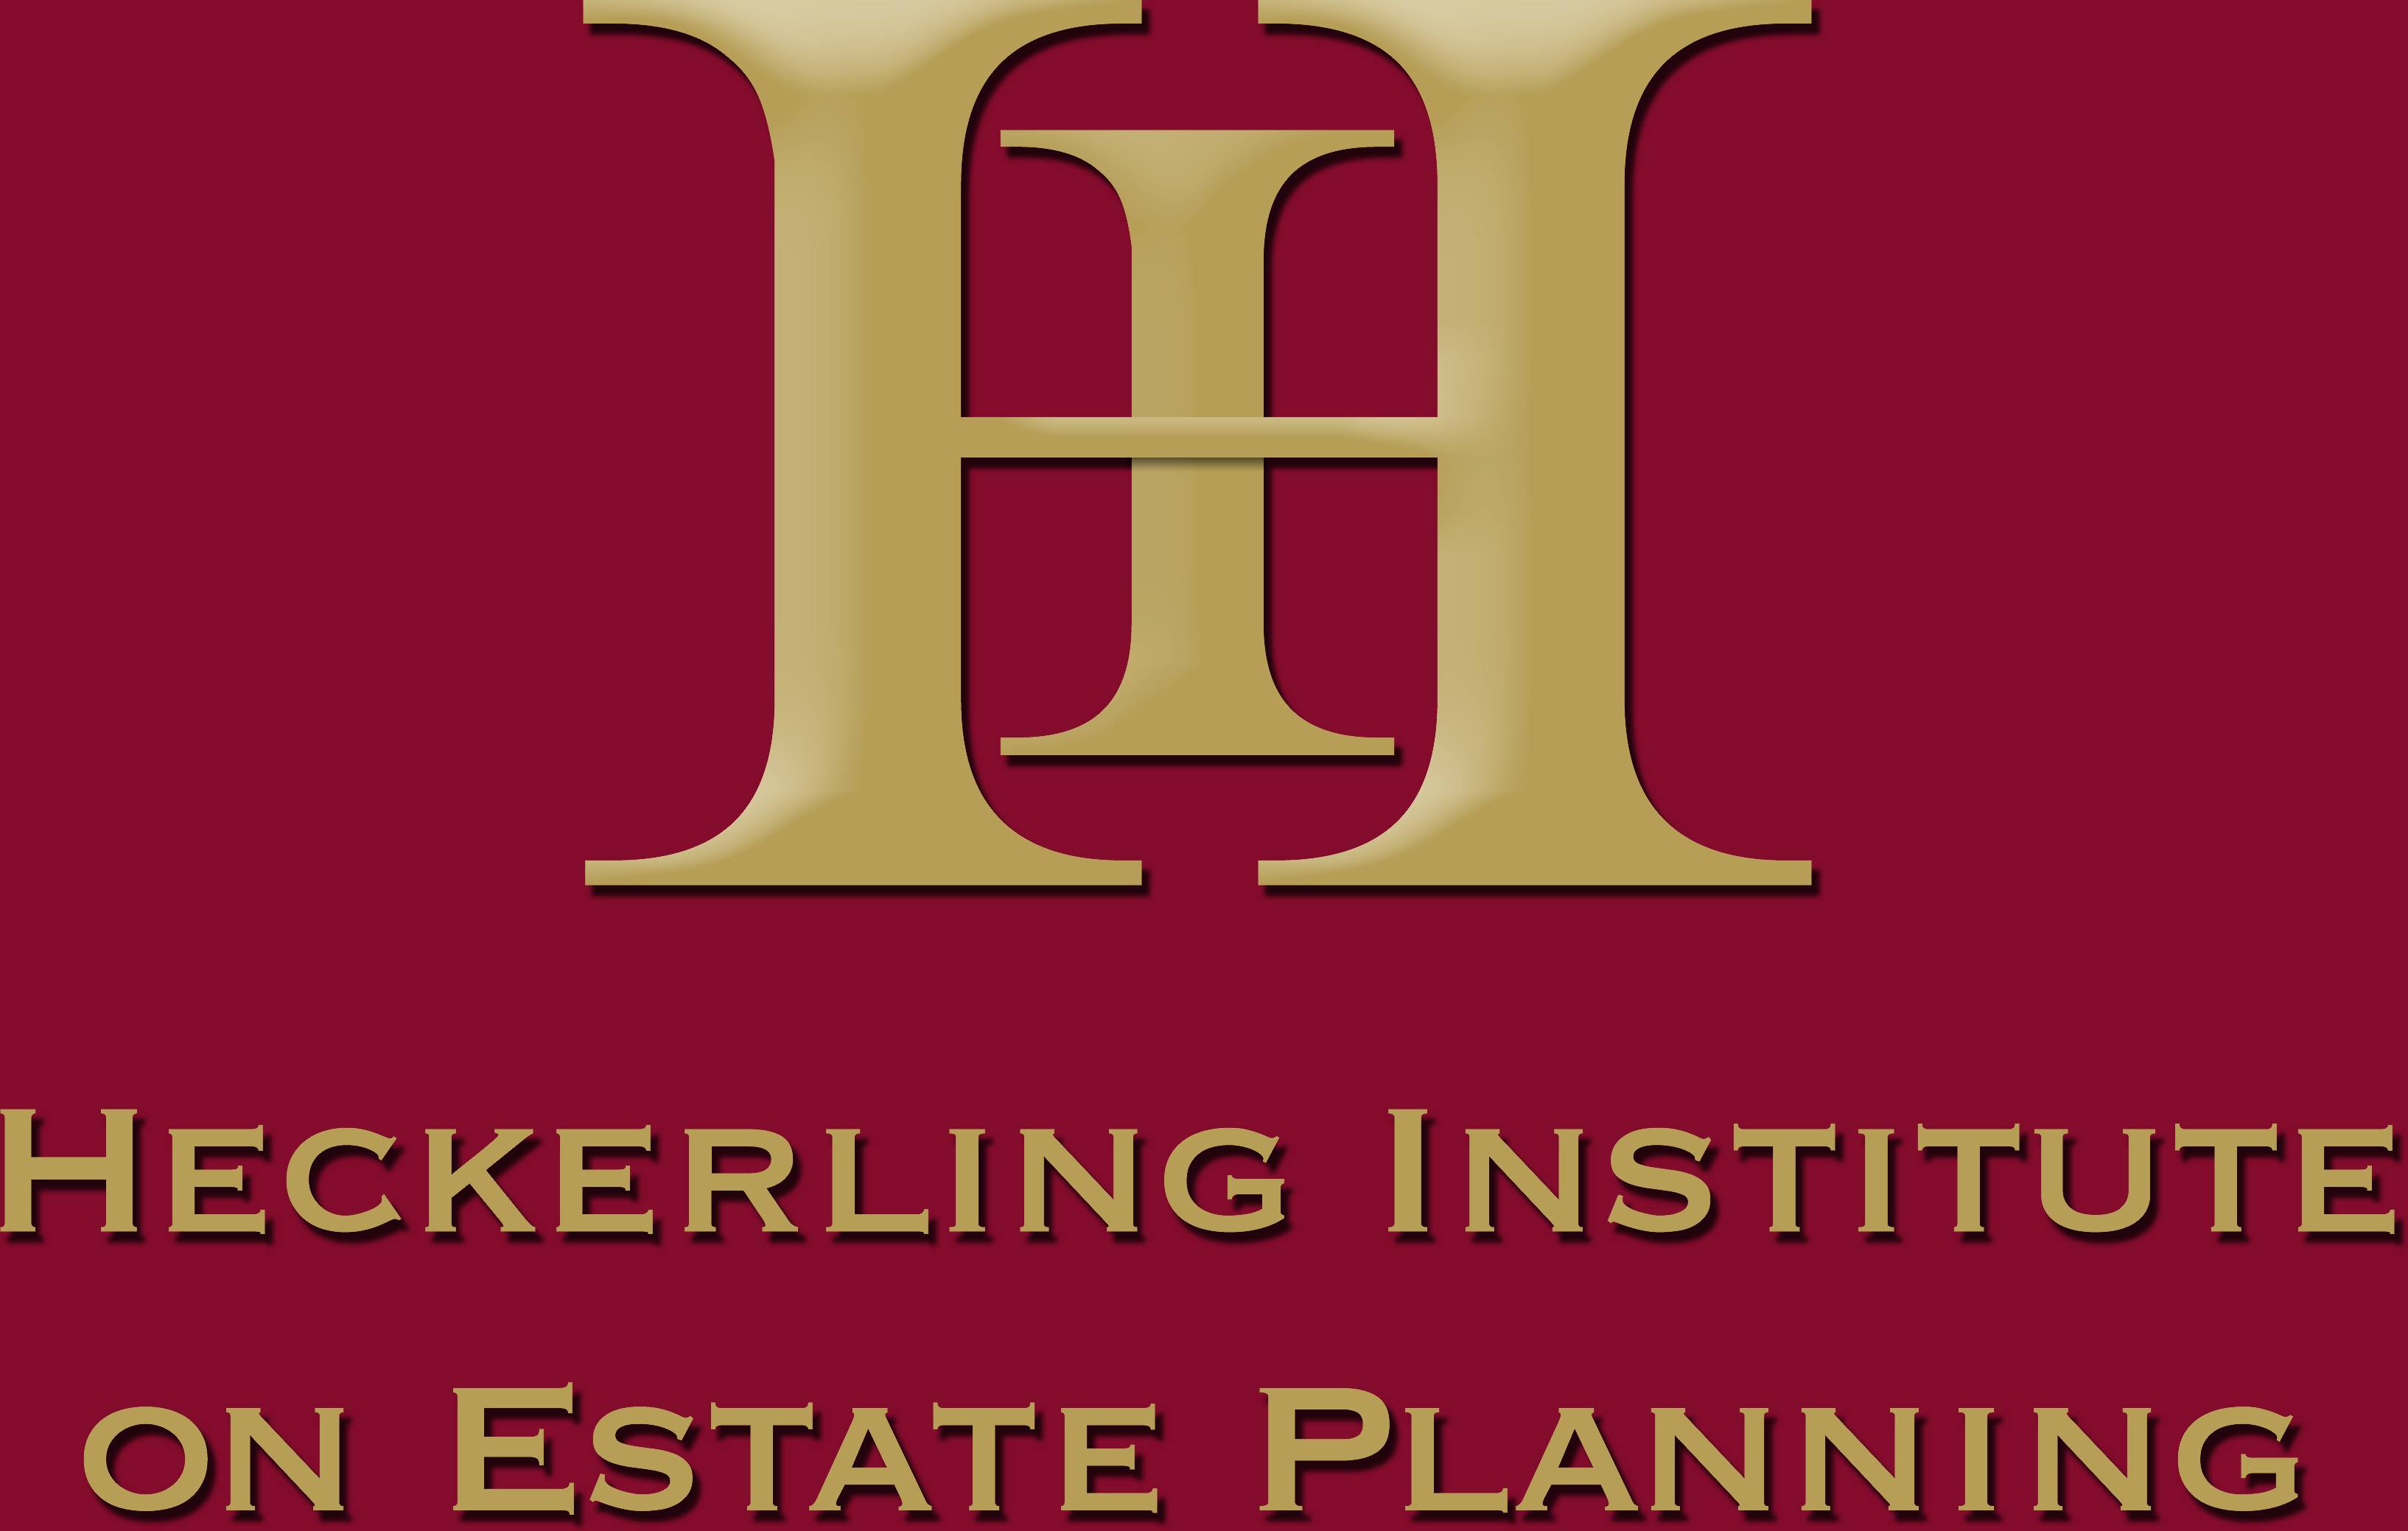 American Home Shield Brochure 2020.Heckerling Institute On Estate Planning University Of